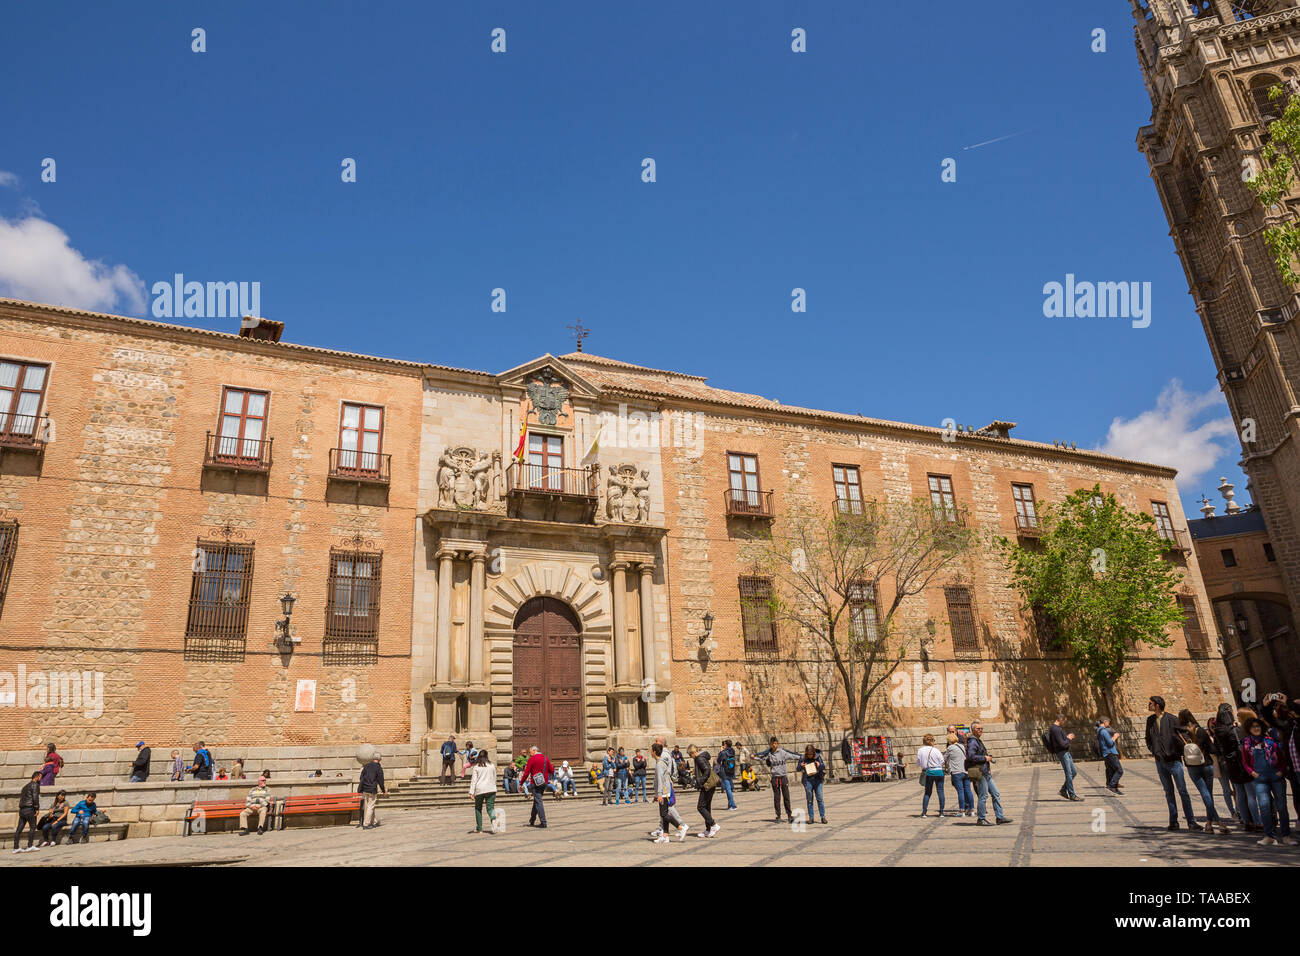 TOLEDO, SPAIN - April 26, 2019: People visiting the cathedral church of Toledo, Spain - Stock Image